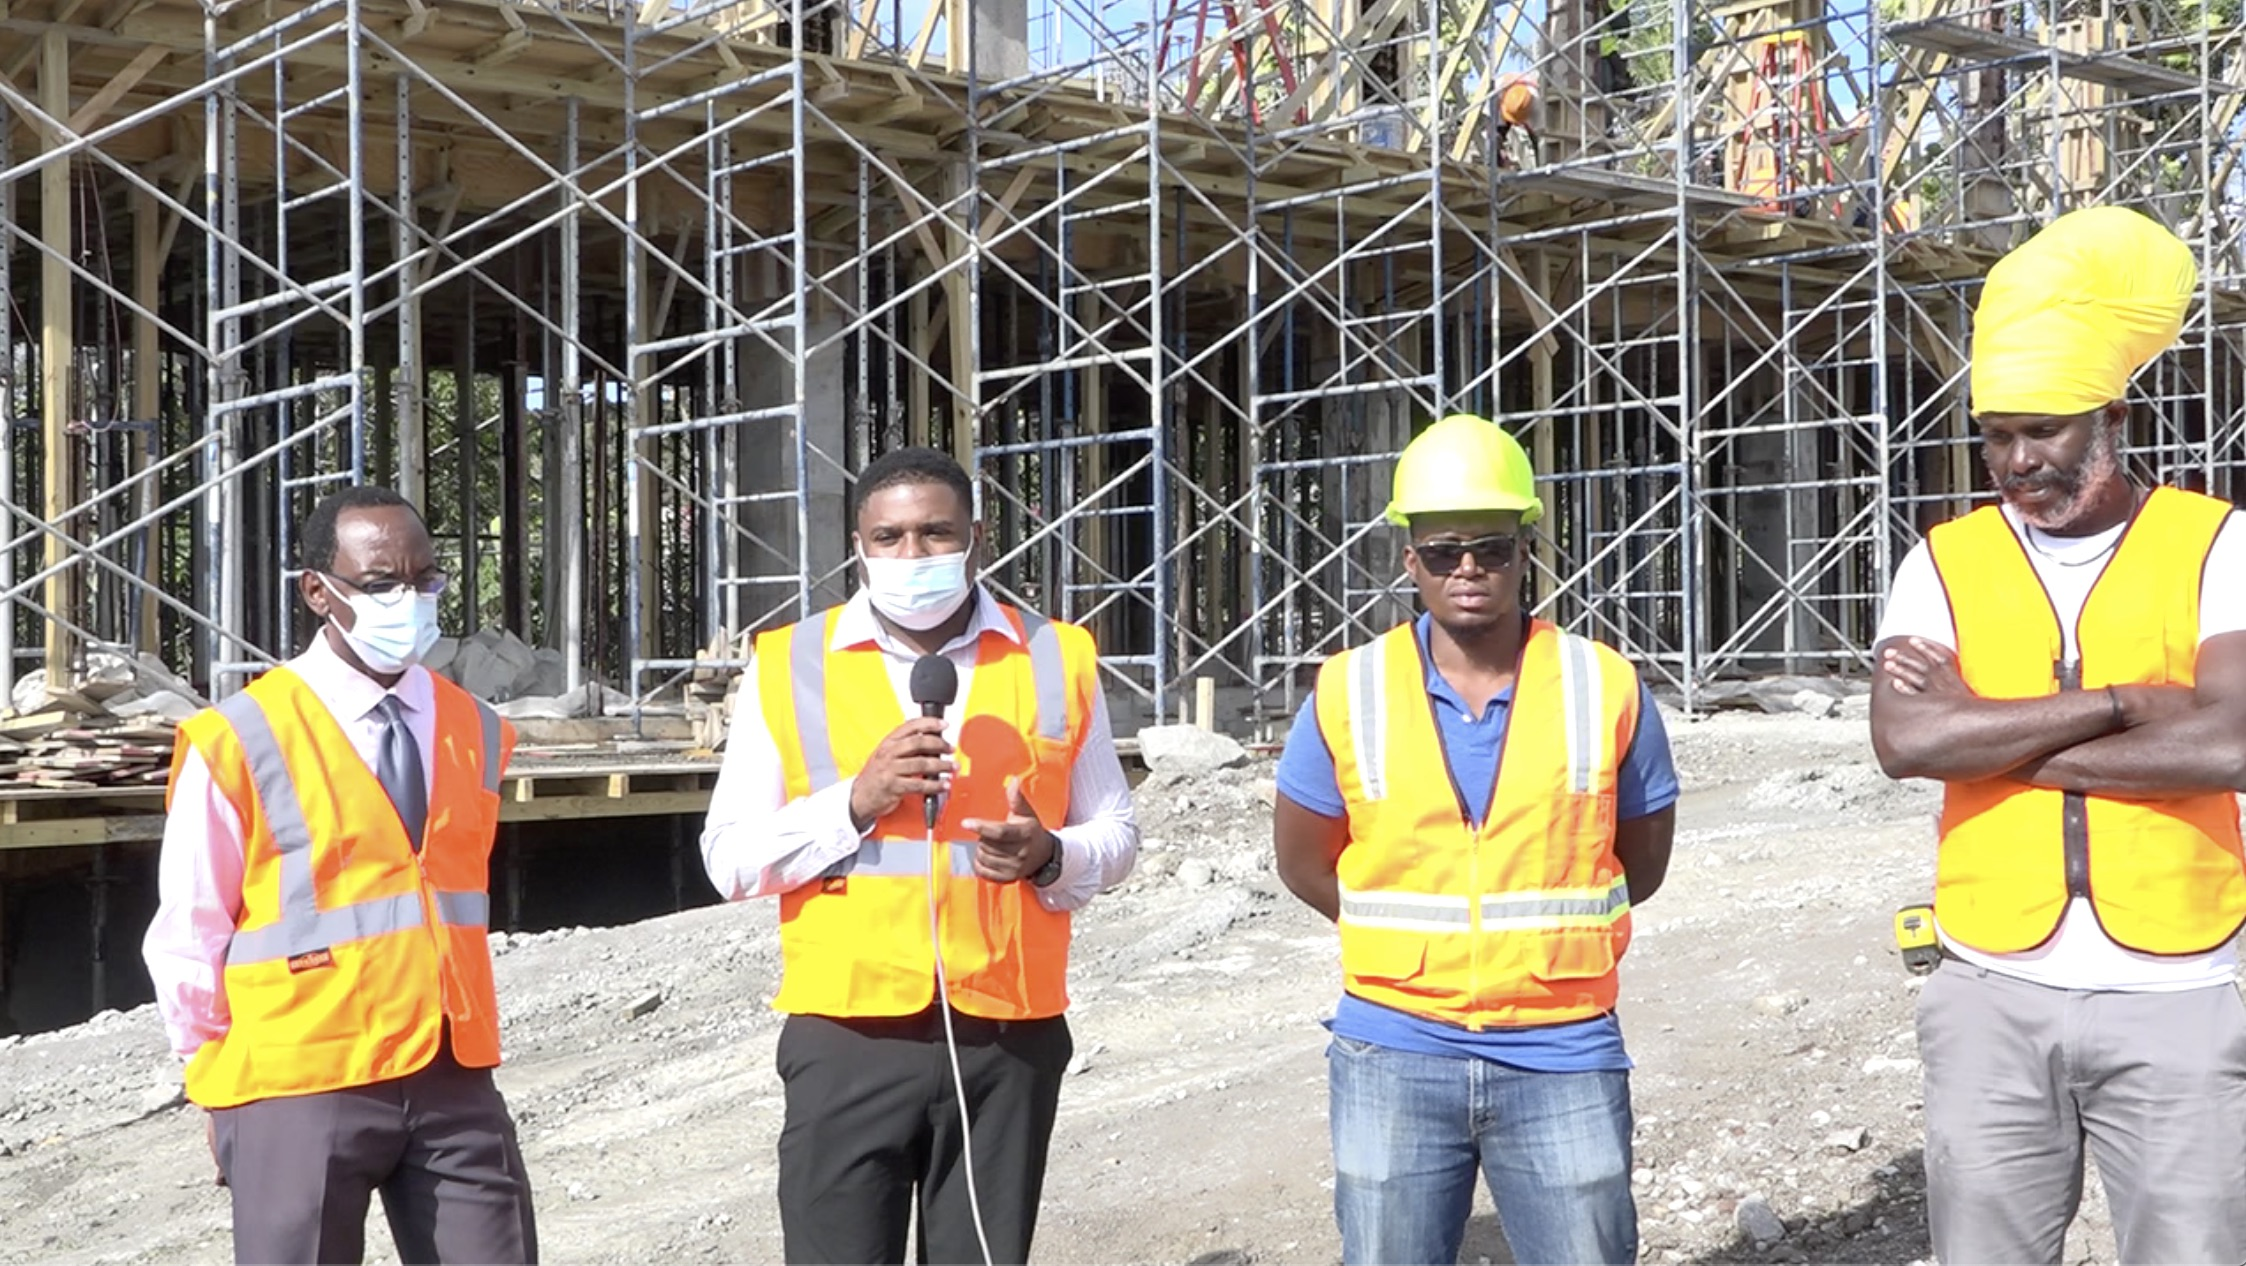 (L-r) Mr. Kevin Barrett, Permanent Secretary in the Ministry of Education; Hon. Troy Liburd, Junior Minister of Education in the Nevis Island Administration; Mr. Darius Comberbatch, Engineer for FDL Consult Inc. in St. Lucia, Consultants for the project; and Mr. Oswald Wilfred, Construction Manager for Lefco Equipment Rental and Construction Company, contractor for the construction of the state-of-the-art Technical Wing at the Gingerland Secondary School during a site visit on February 08, 2021